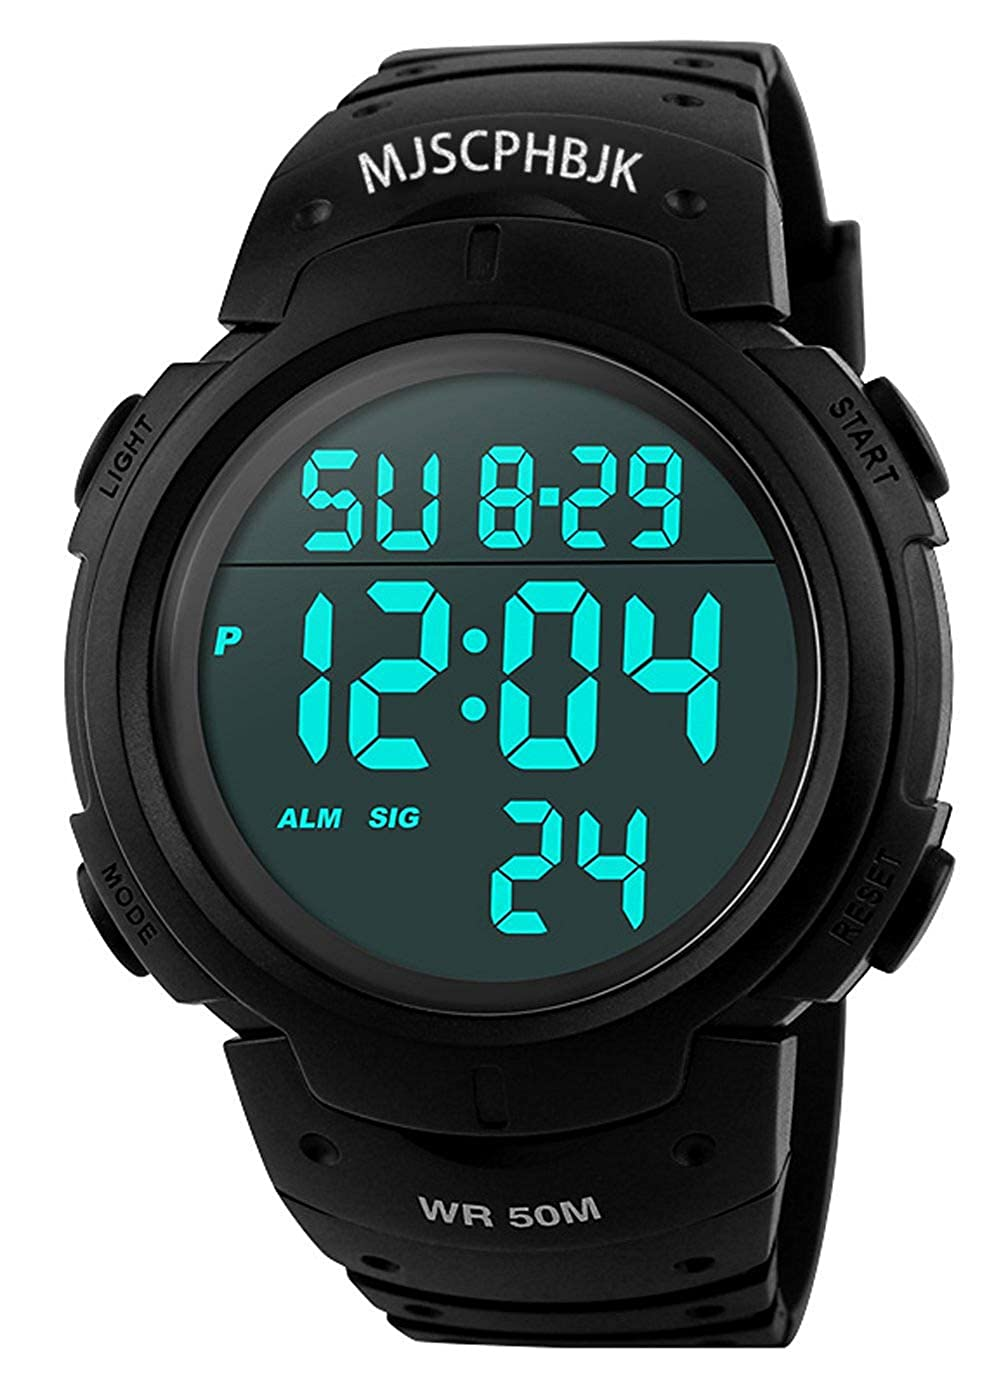 9b78f497f6cc MJSCPHBJK Mens Digital Sports Watch, Waterproof LED Screen Large Face  Military Watches and Heavy Duty Electronic Simple Army Watch with Alarm,  Stopwatch, ...